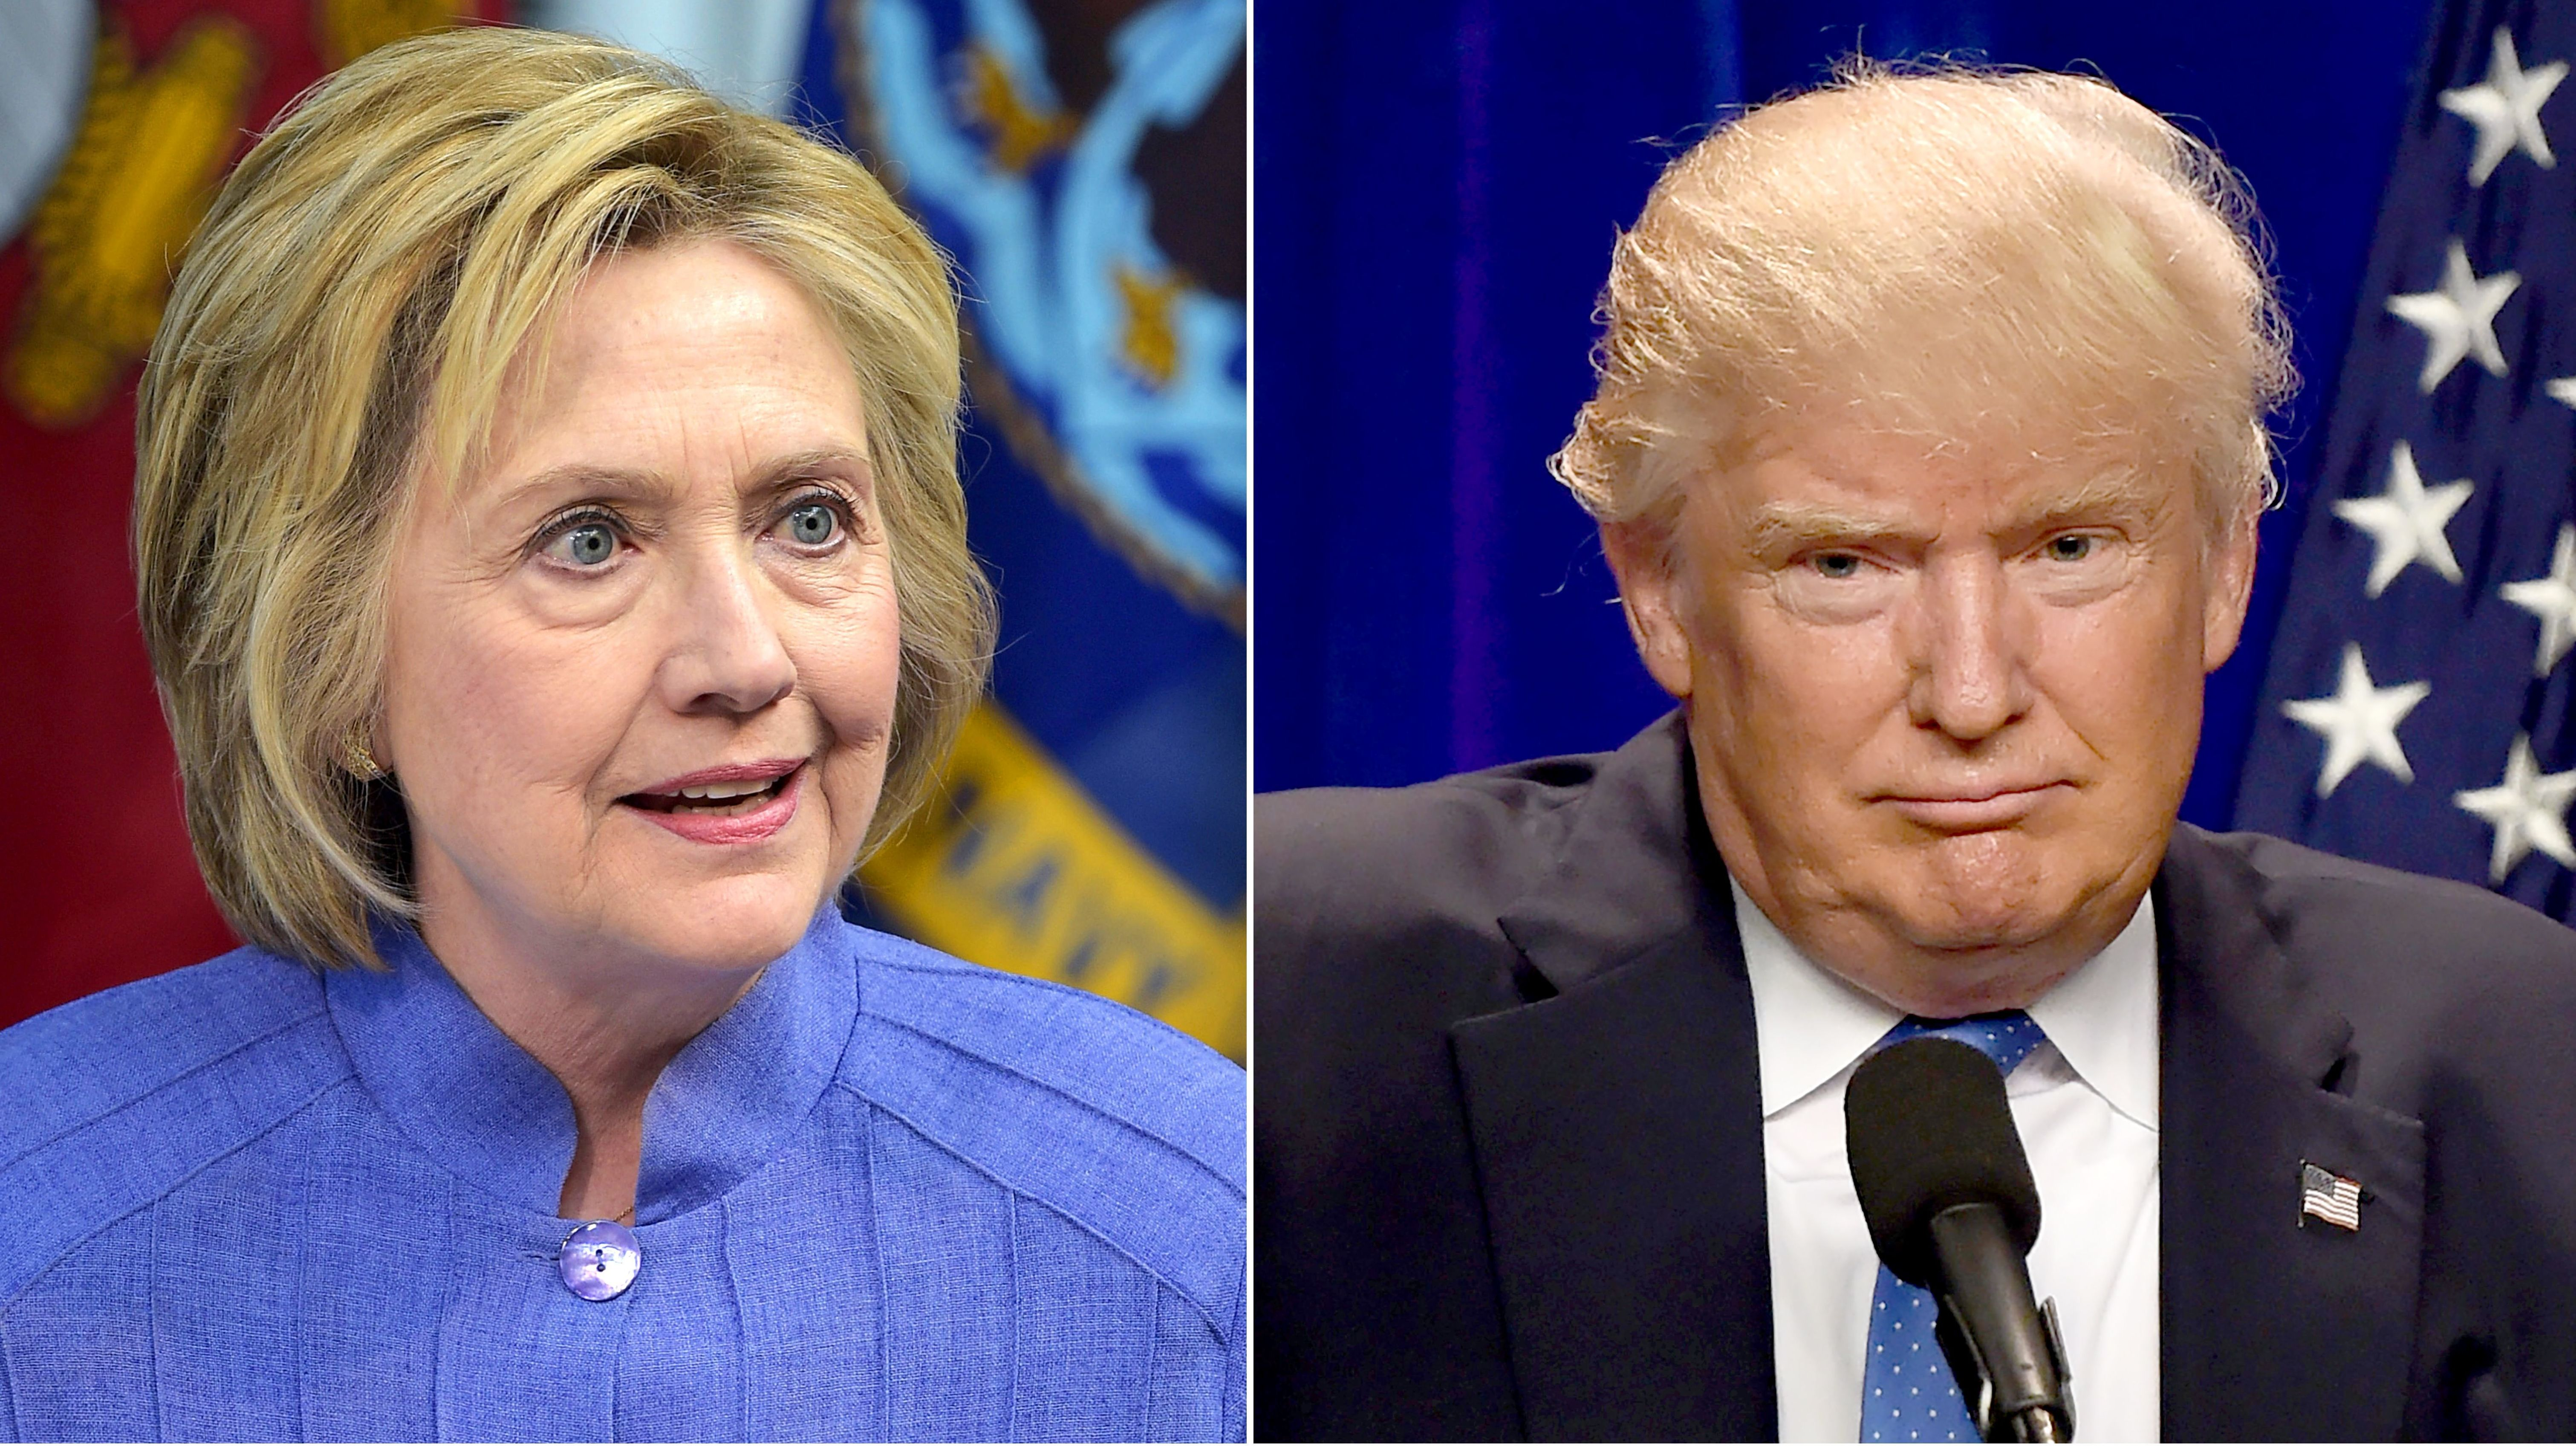 Your Cheat Sheet To The Issues That Could Come Up In The Presidential Debate